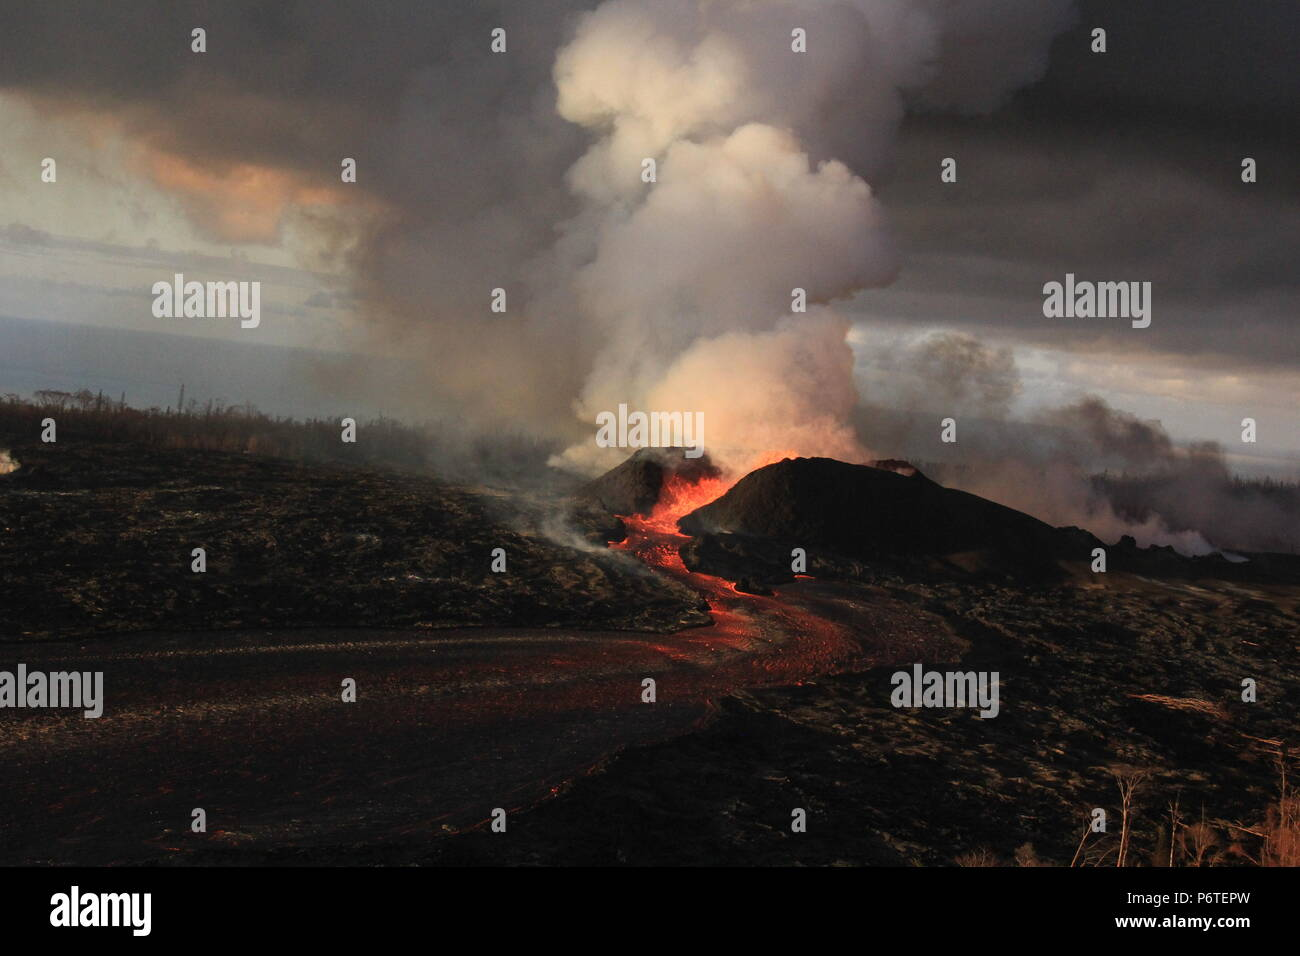 Lava fountains continue to spew magma from the 180 foot tall spatter cone with lave flowing into an open channel at fissure 8 caused by the eruption of the Kilauea volcano June 30, 2018 in Hawaii. The recent eruption continues destroying homes, forcing evacuations and spewing lava and poison gas on the Big Island of Hawaii. - Stock Image